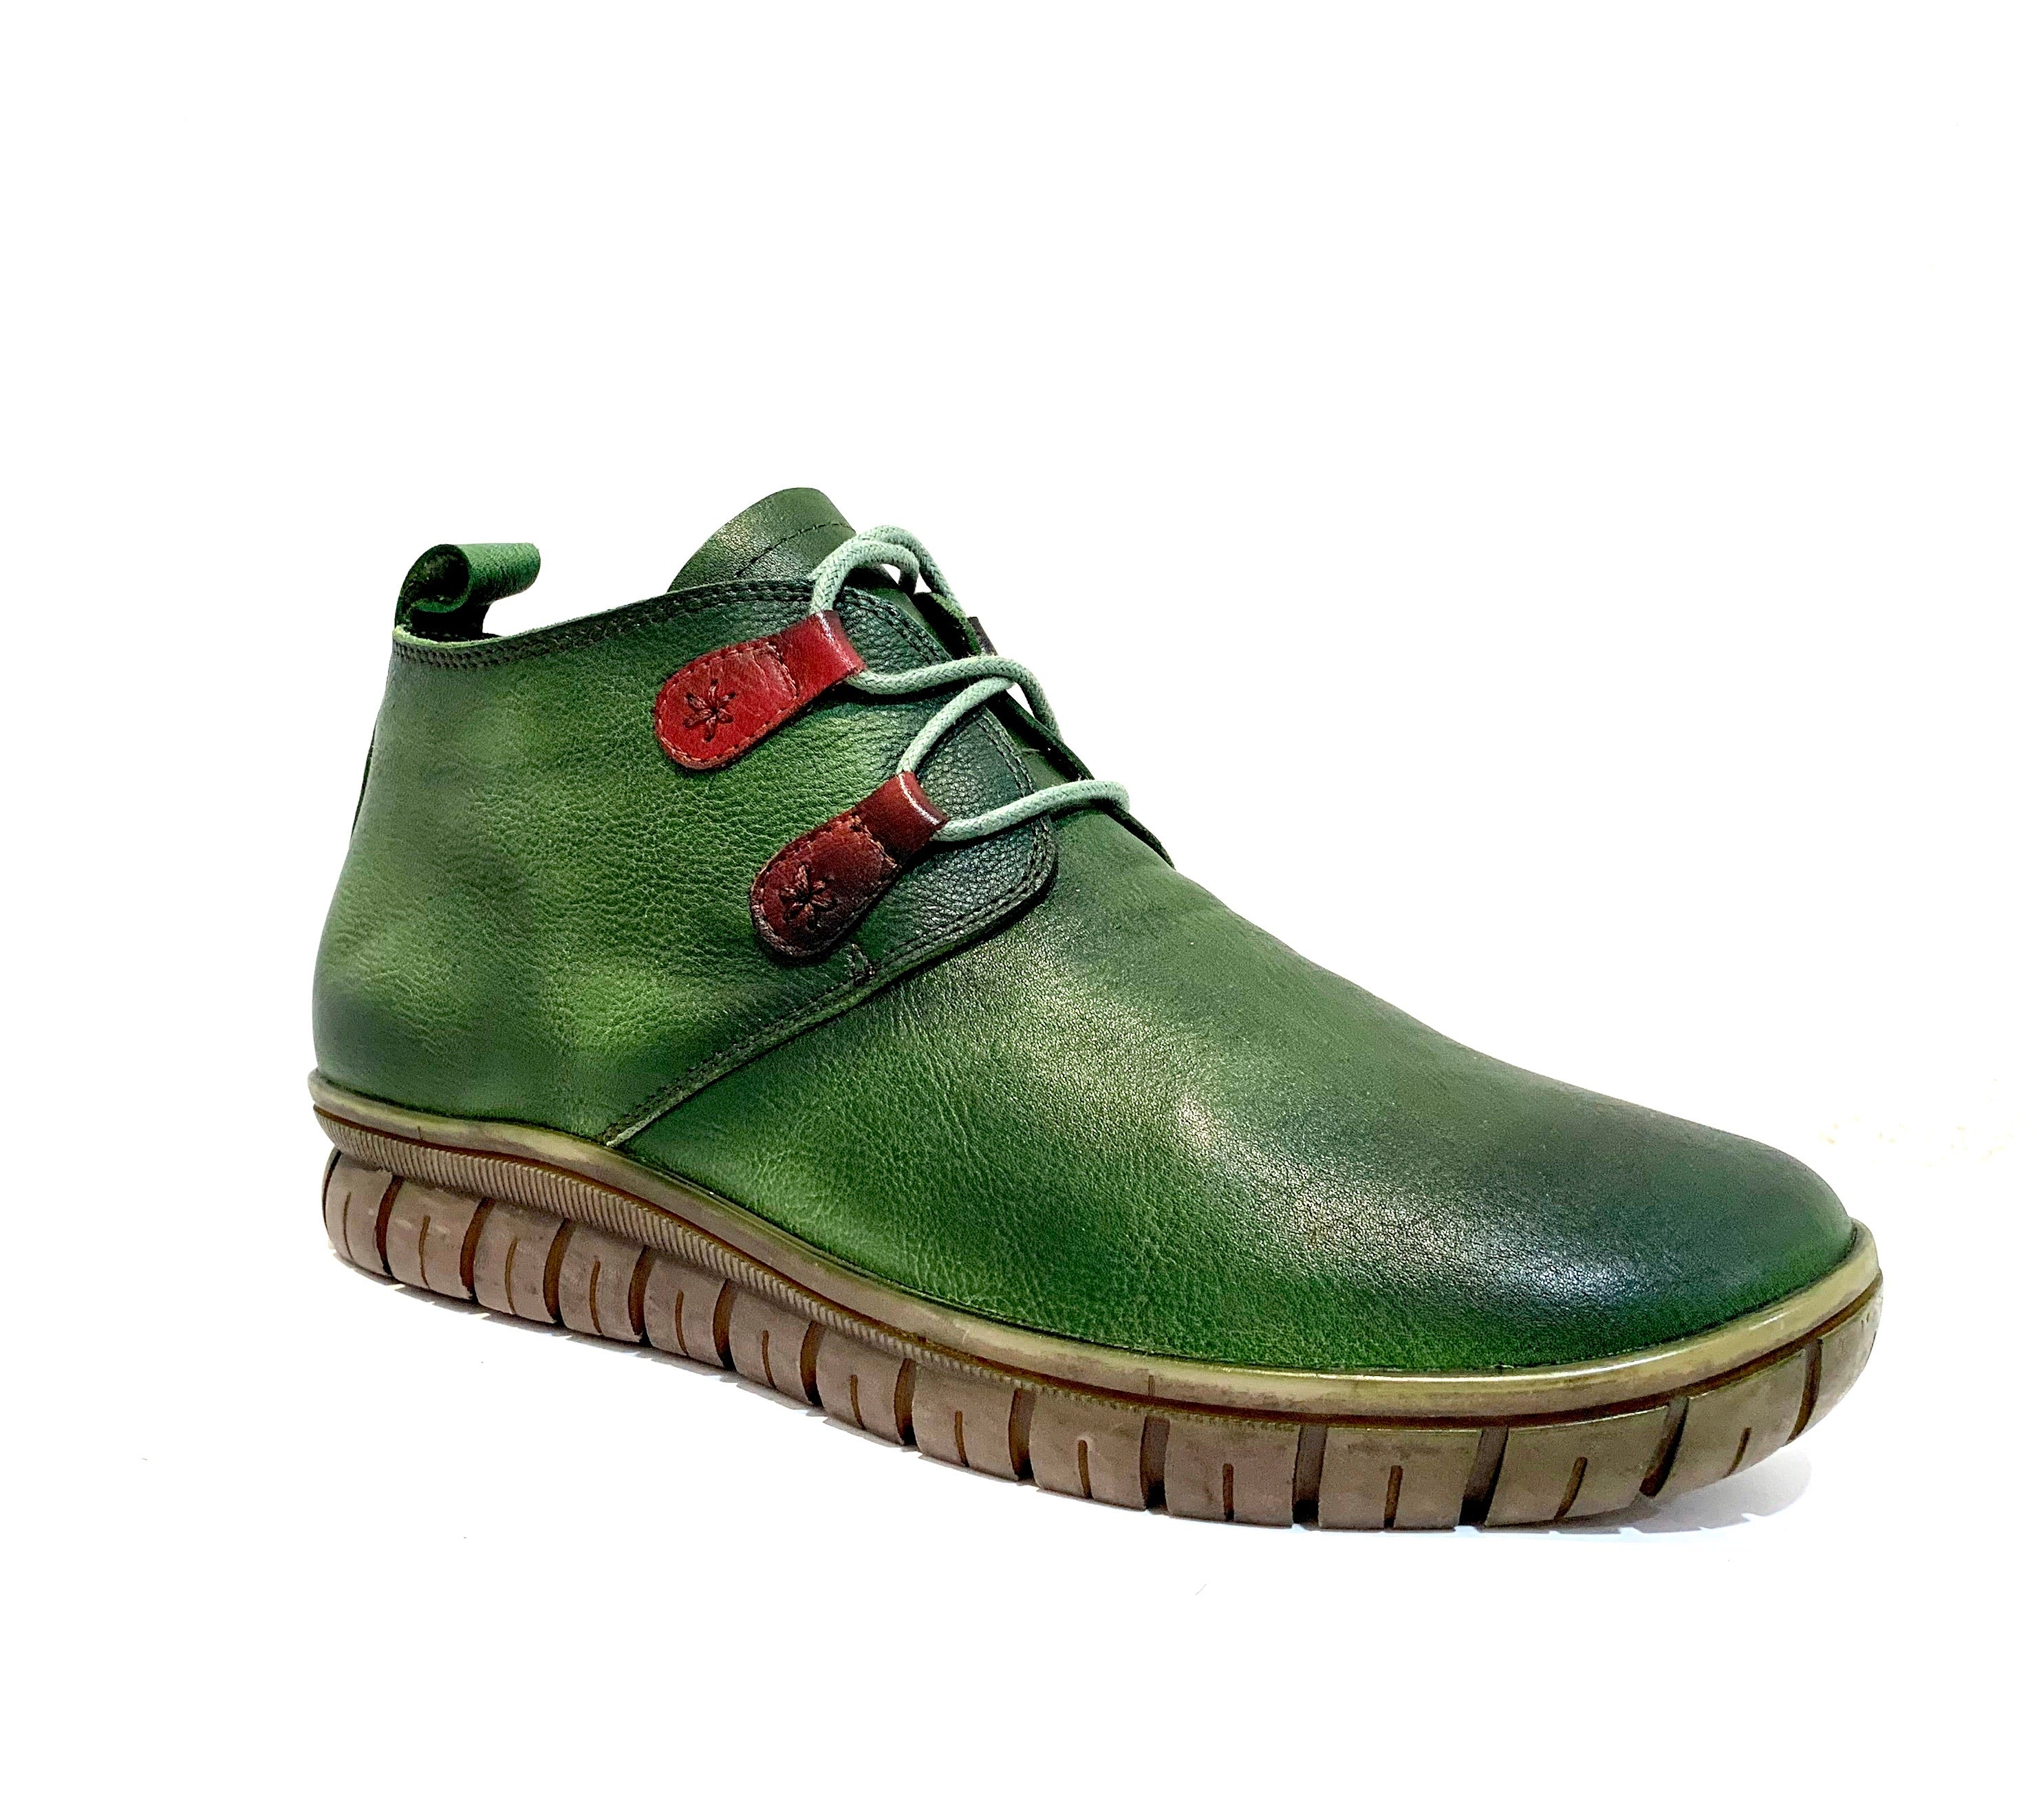 Minki Ladies Boots Forrest Green Bunt 2 Eyelet Lace Up